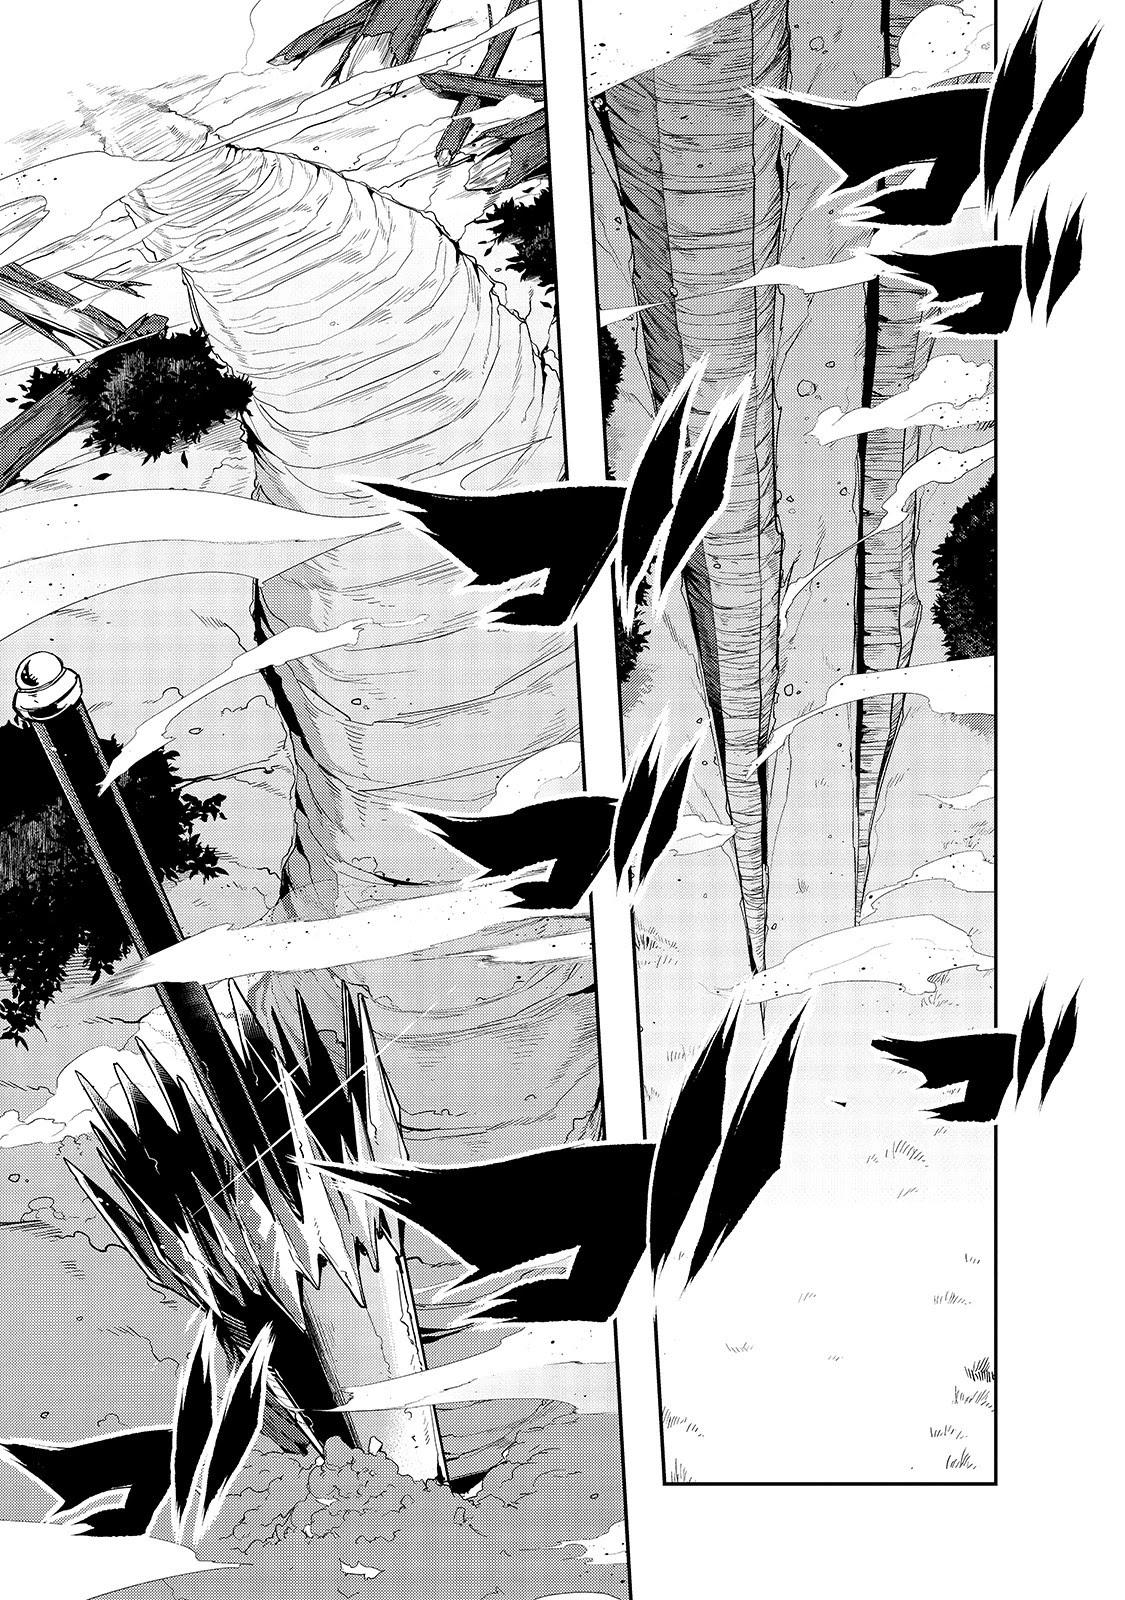 """I Became The Strongest With The Failure Frame """"abnormal State Skill"""" As I Devastated Everything Chapter 19 page 2 - Mangakakalots.com"""